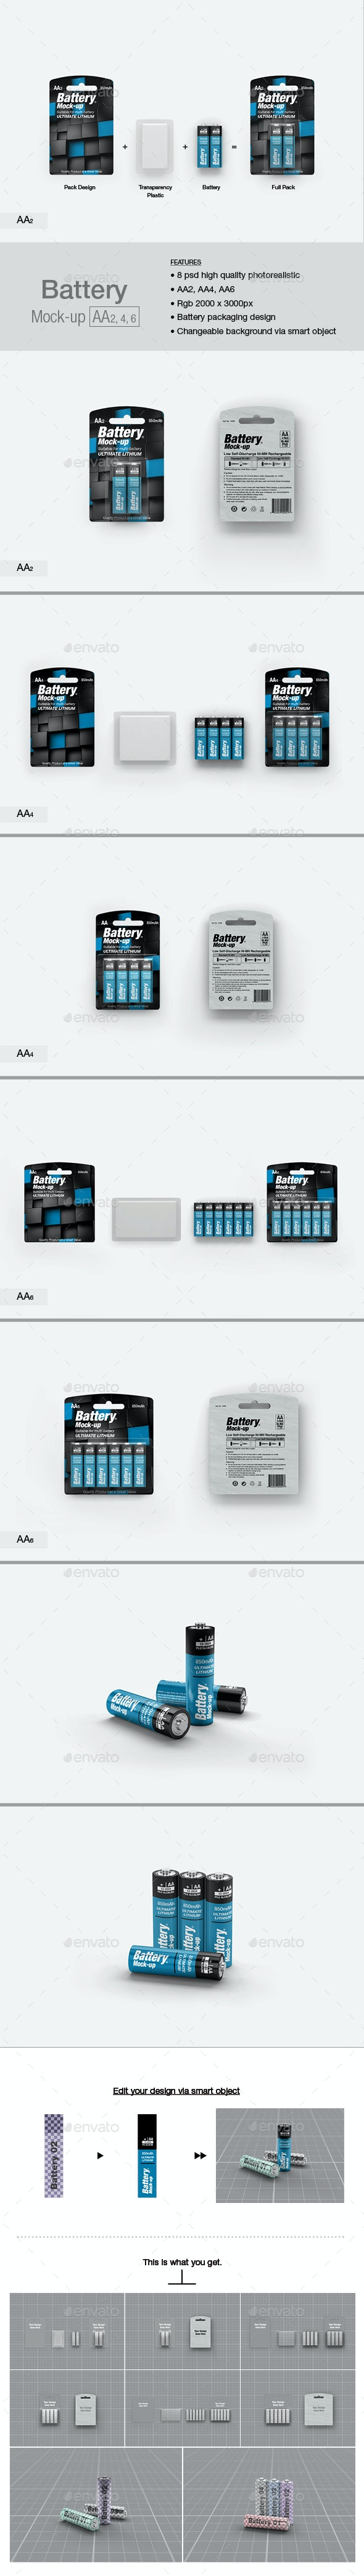 Battery AA Mock-up - Packaging Product Mock-Ups